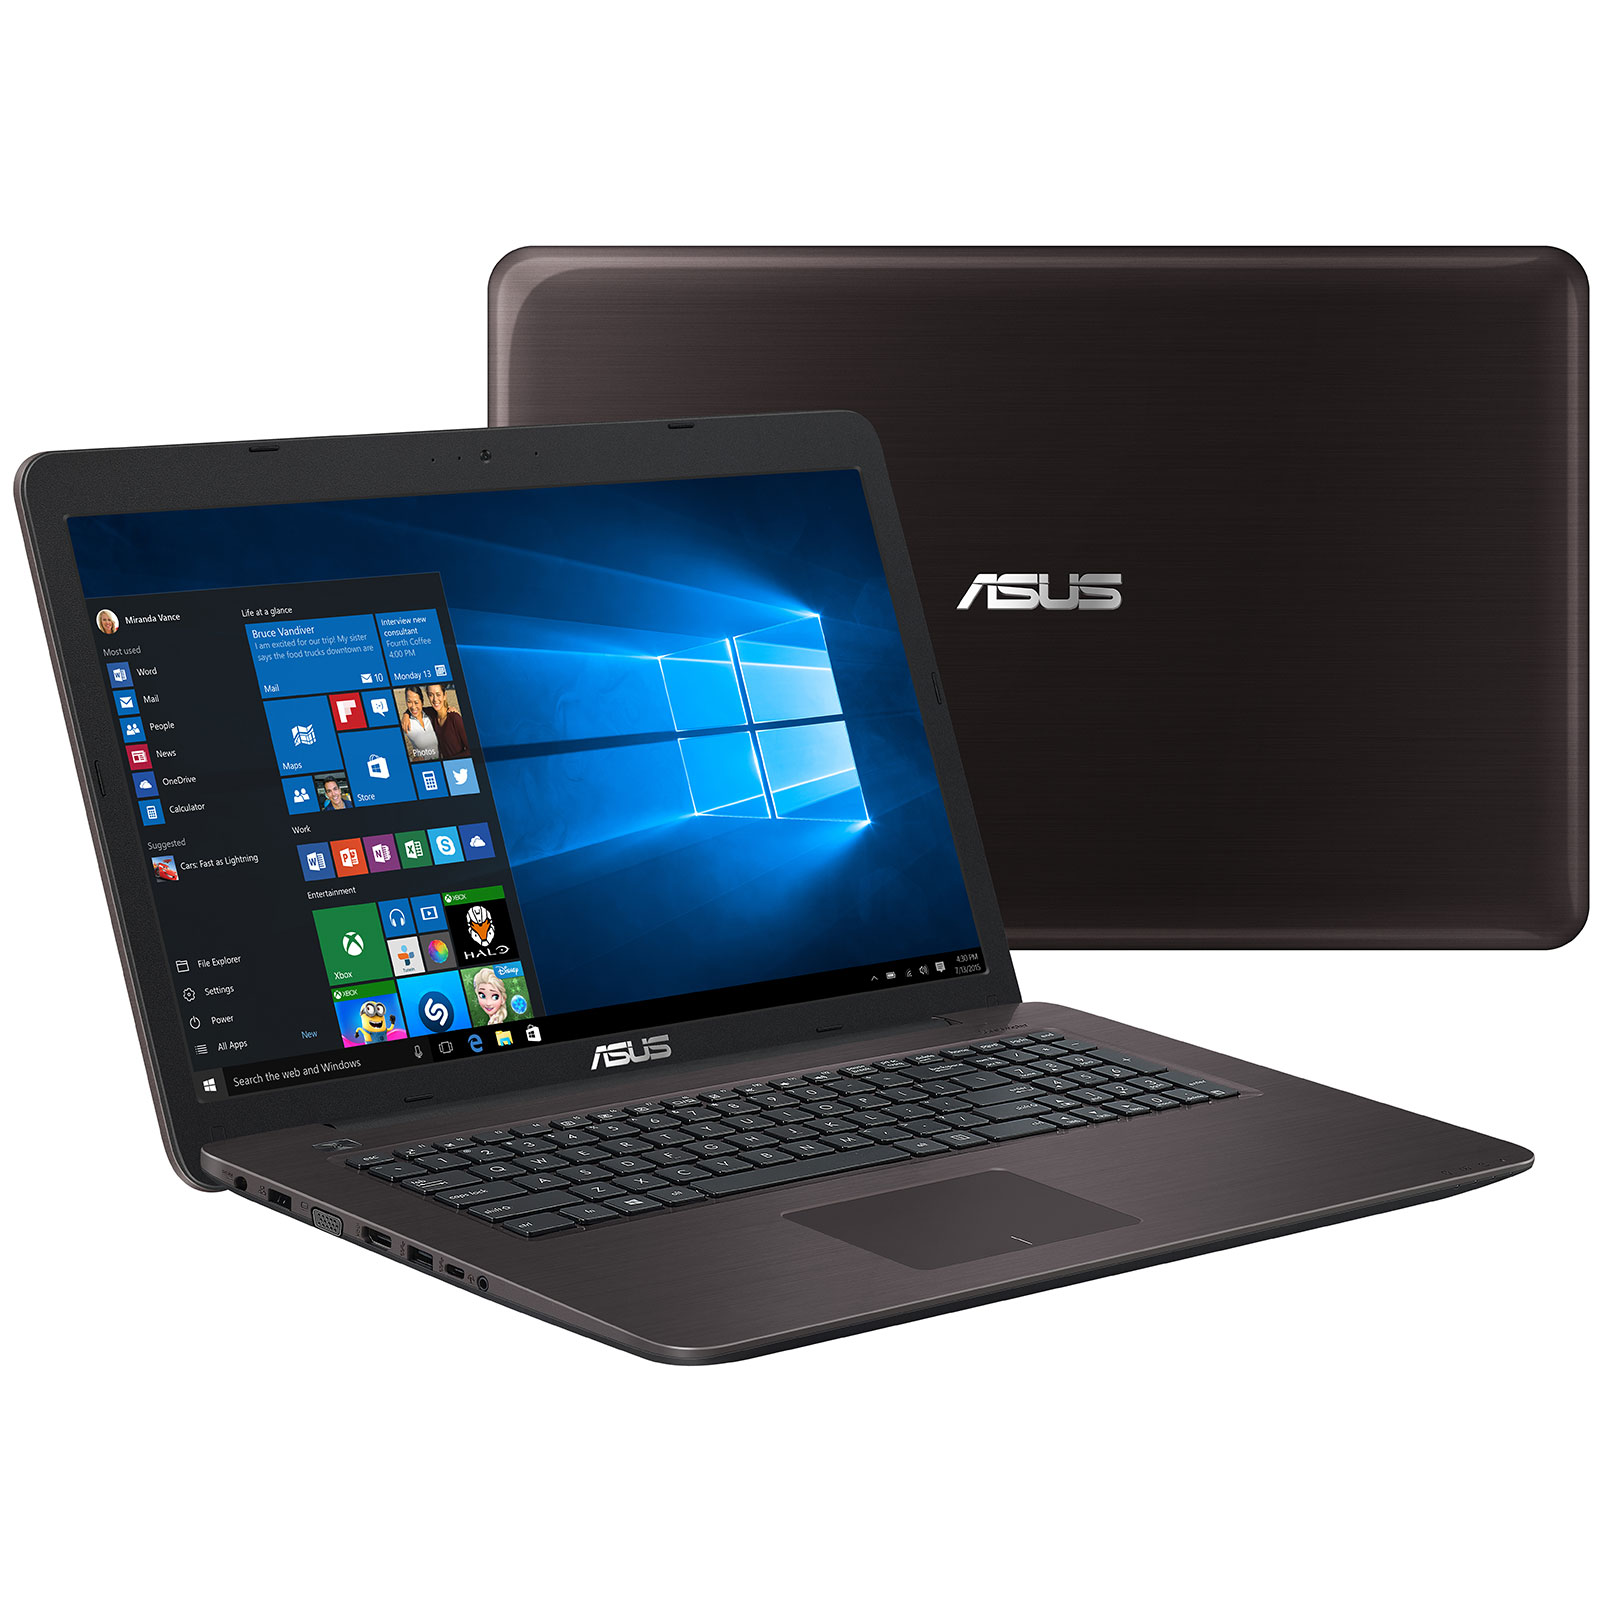 asus p2740uv t4327r pc portable asus sur. Black Bedroom Furniture Sets. Home Design Ideas